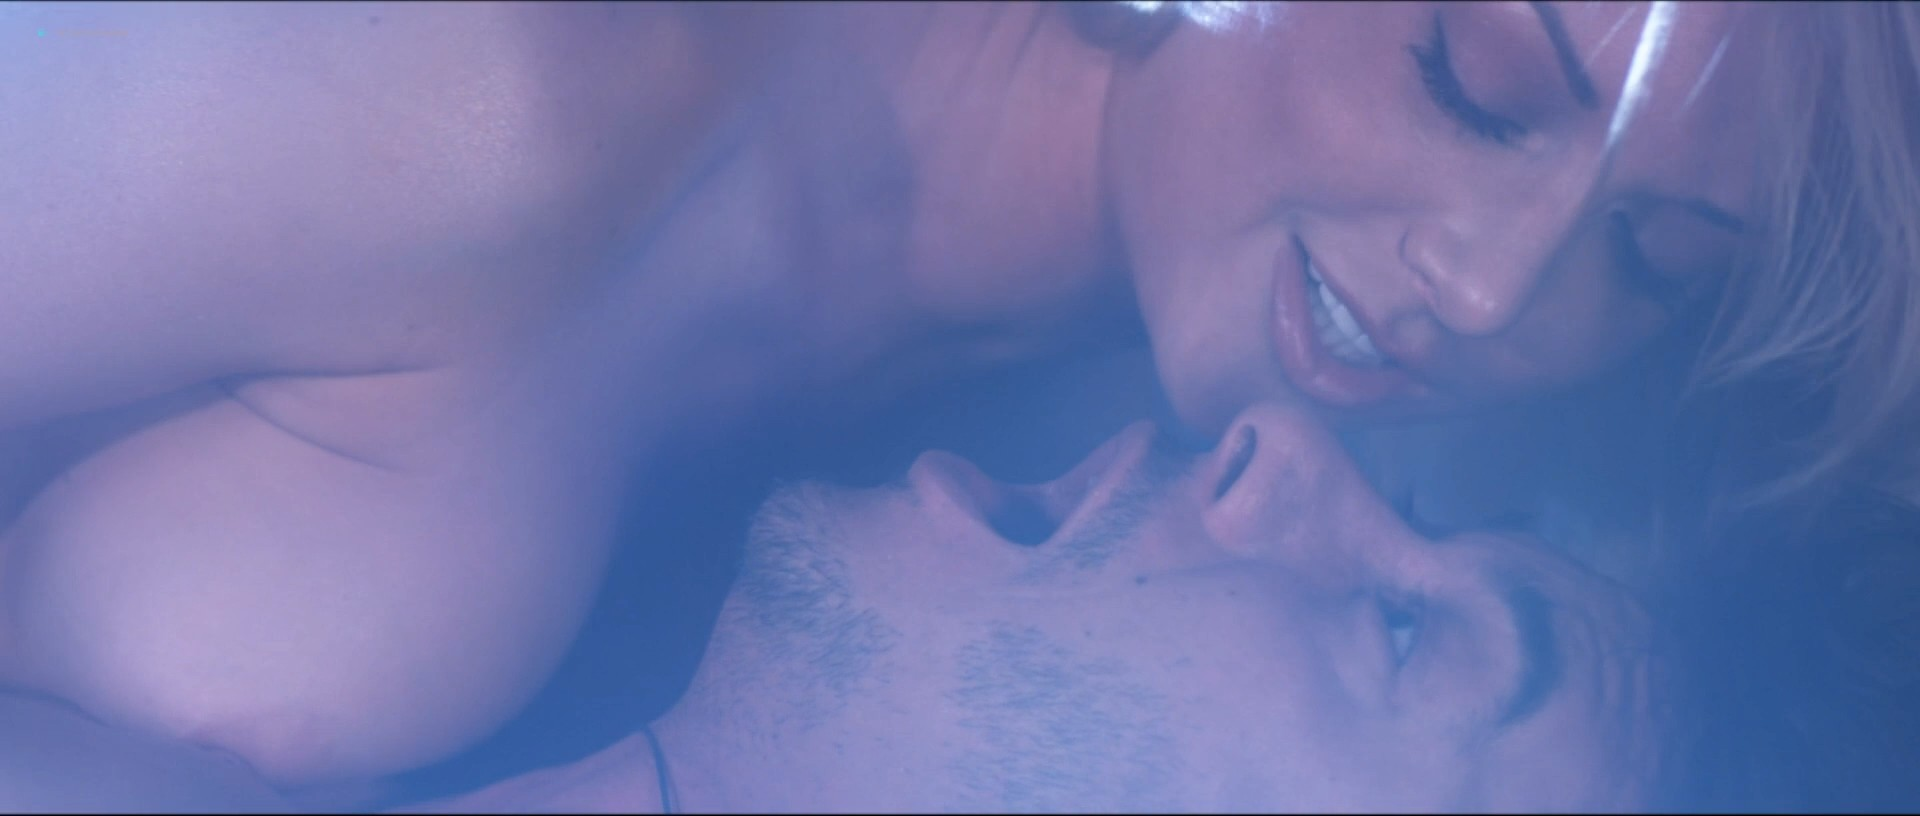 Kayden Kross nude and sex Nicole D'Angelo, Brooke Haven and others nude too - Blue Dream (2013) 1080p (11)